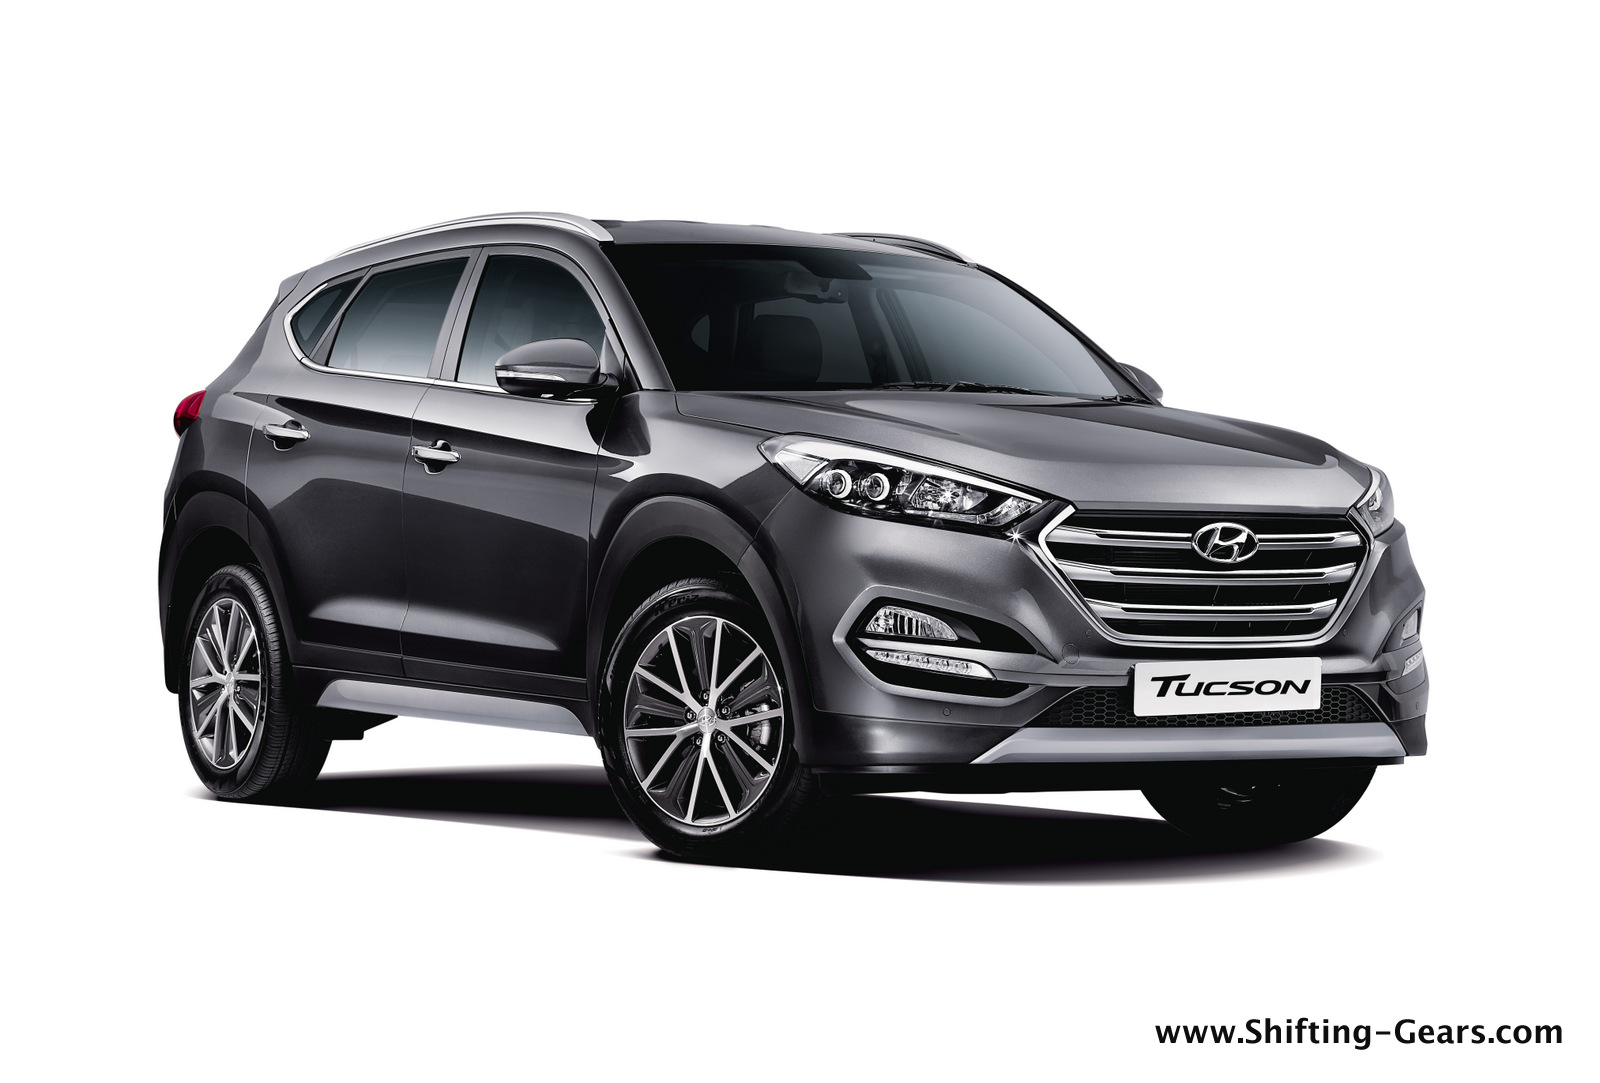 hyundai launches all new tucson suv for inr lakh shifting gears. Black Bedroom Furniture Sets. Home Design Ideas